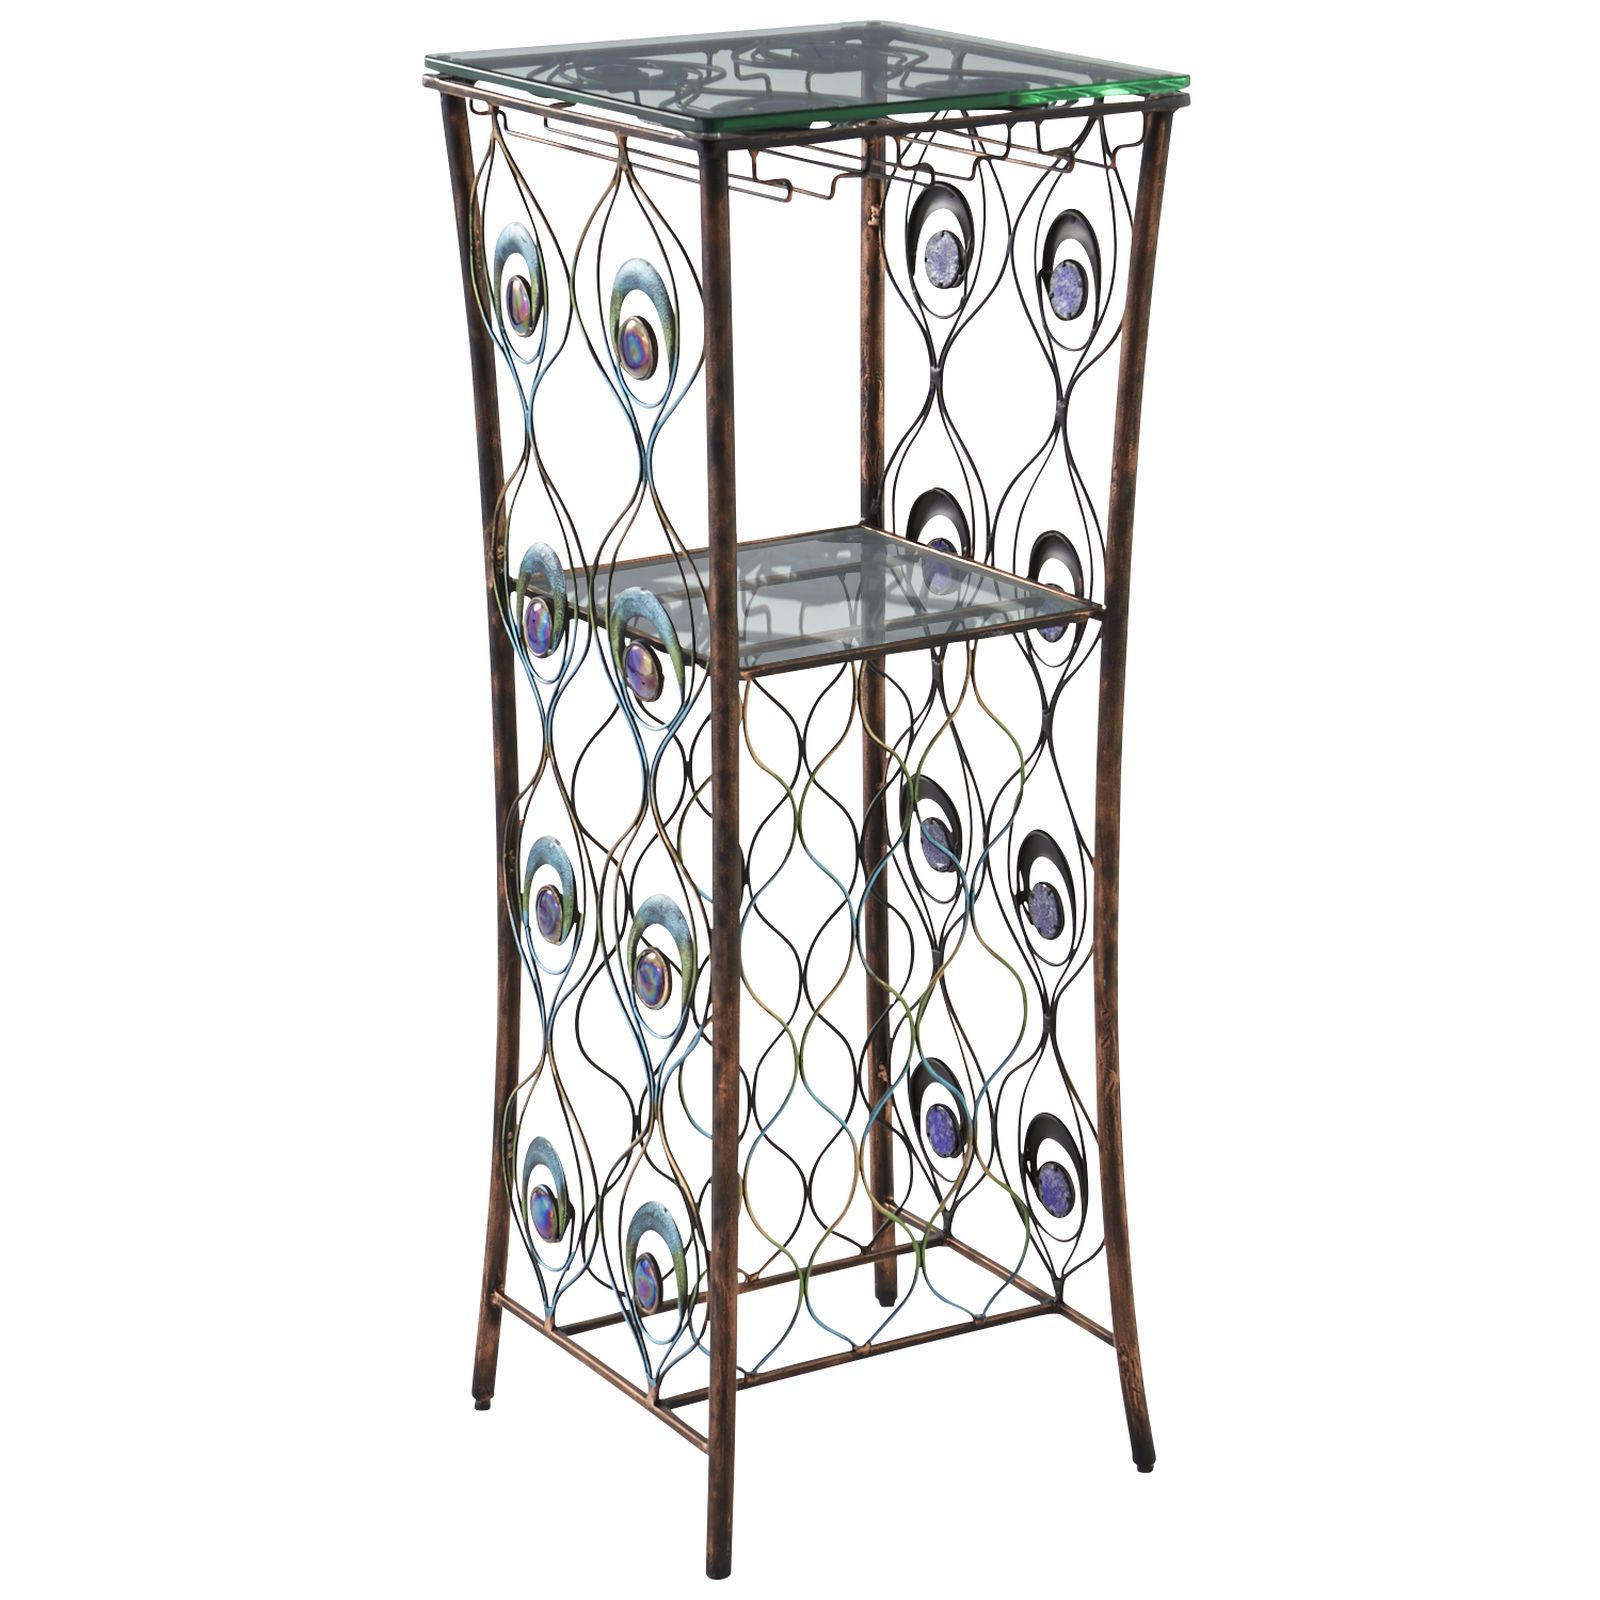 Peacock Wine Rack - Pier 1 Imports